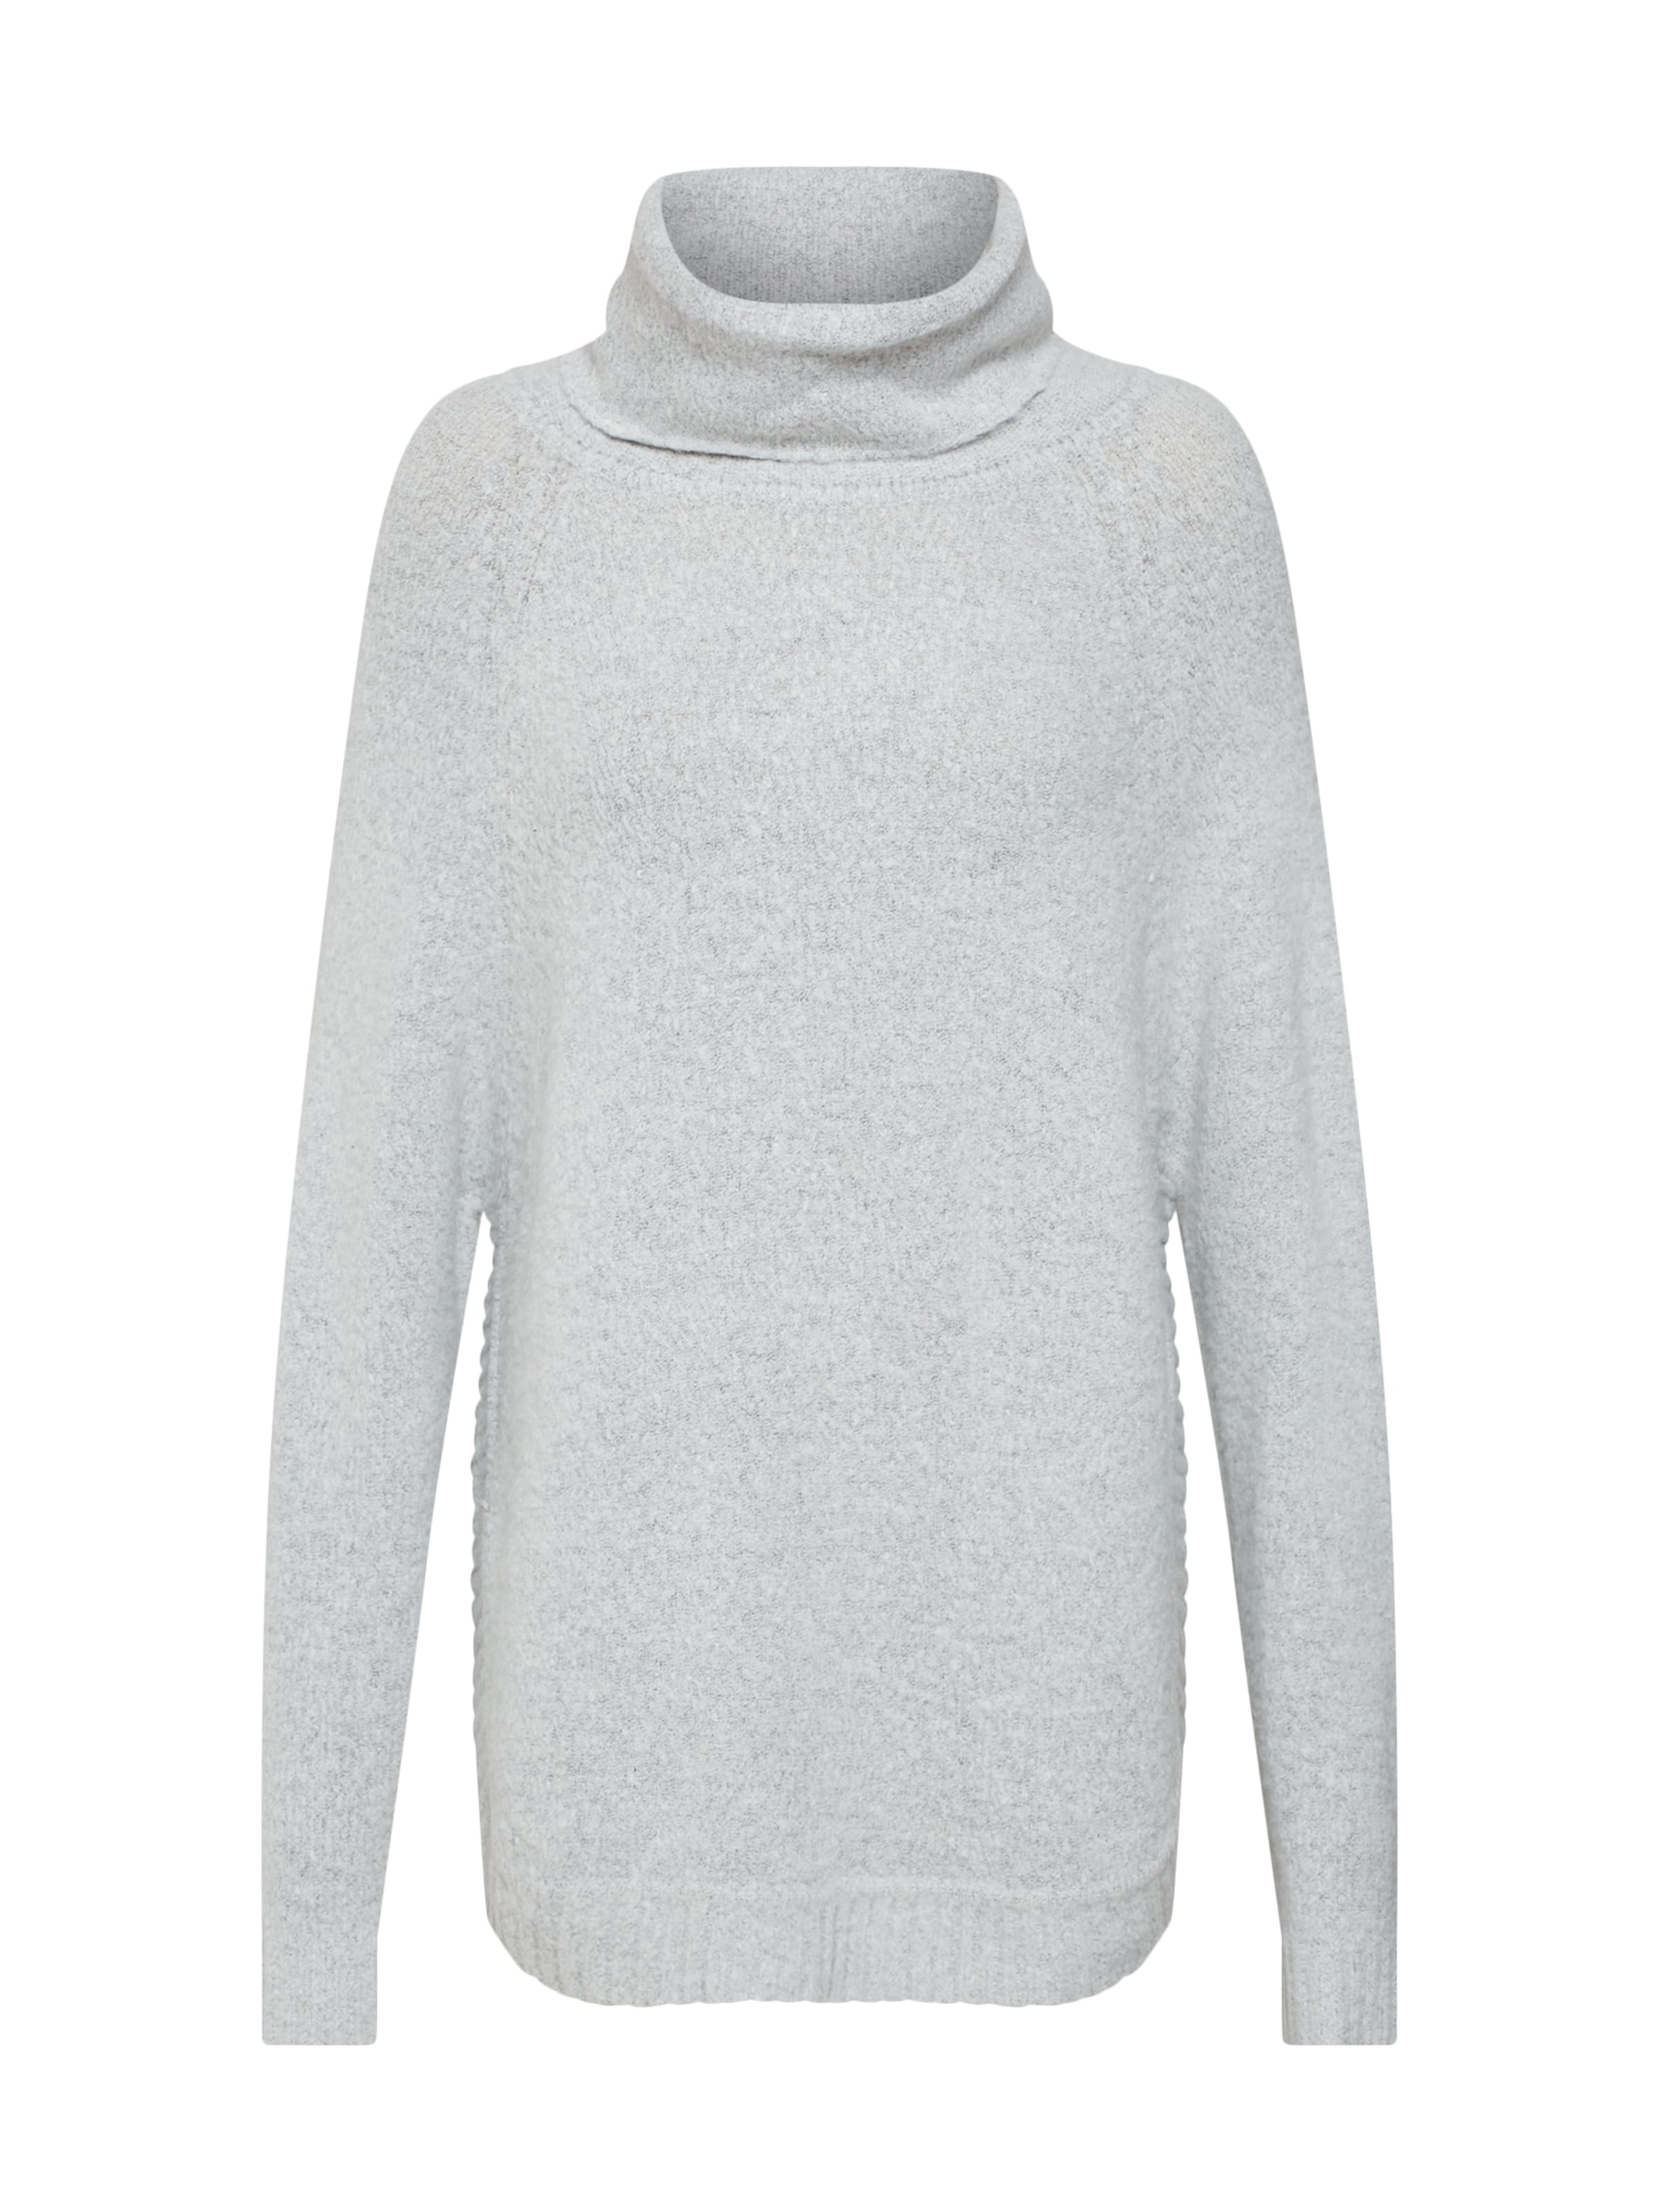 'josefina' About You Graumeliert In Pullover MGUpqzSV